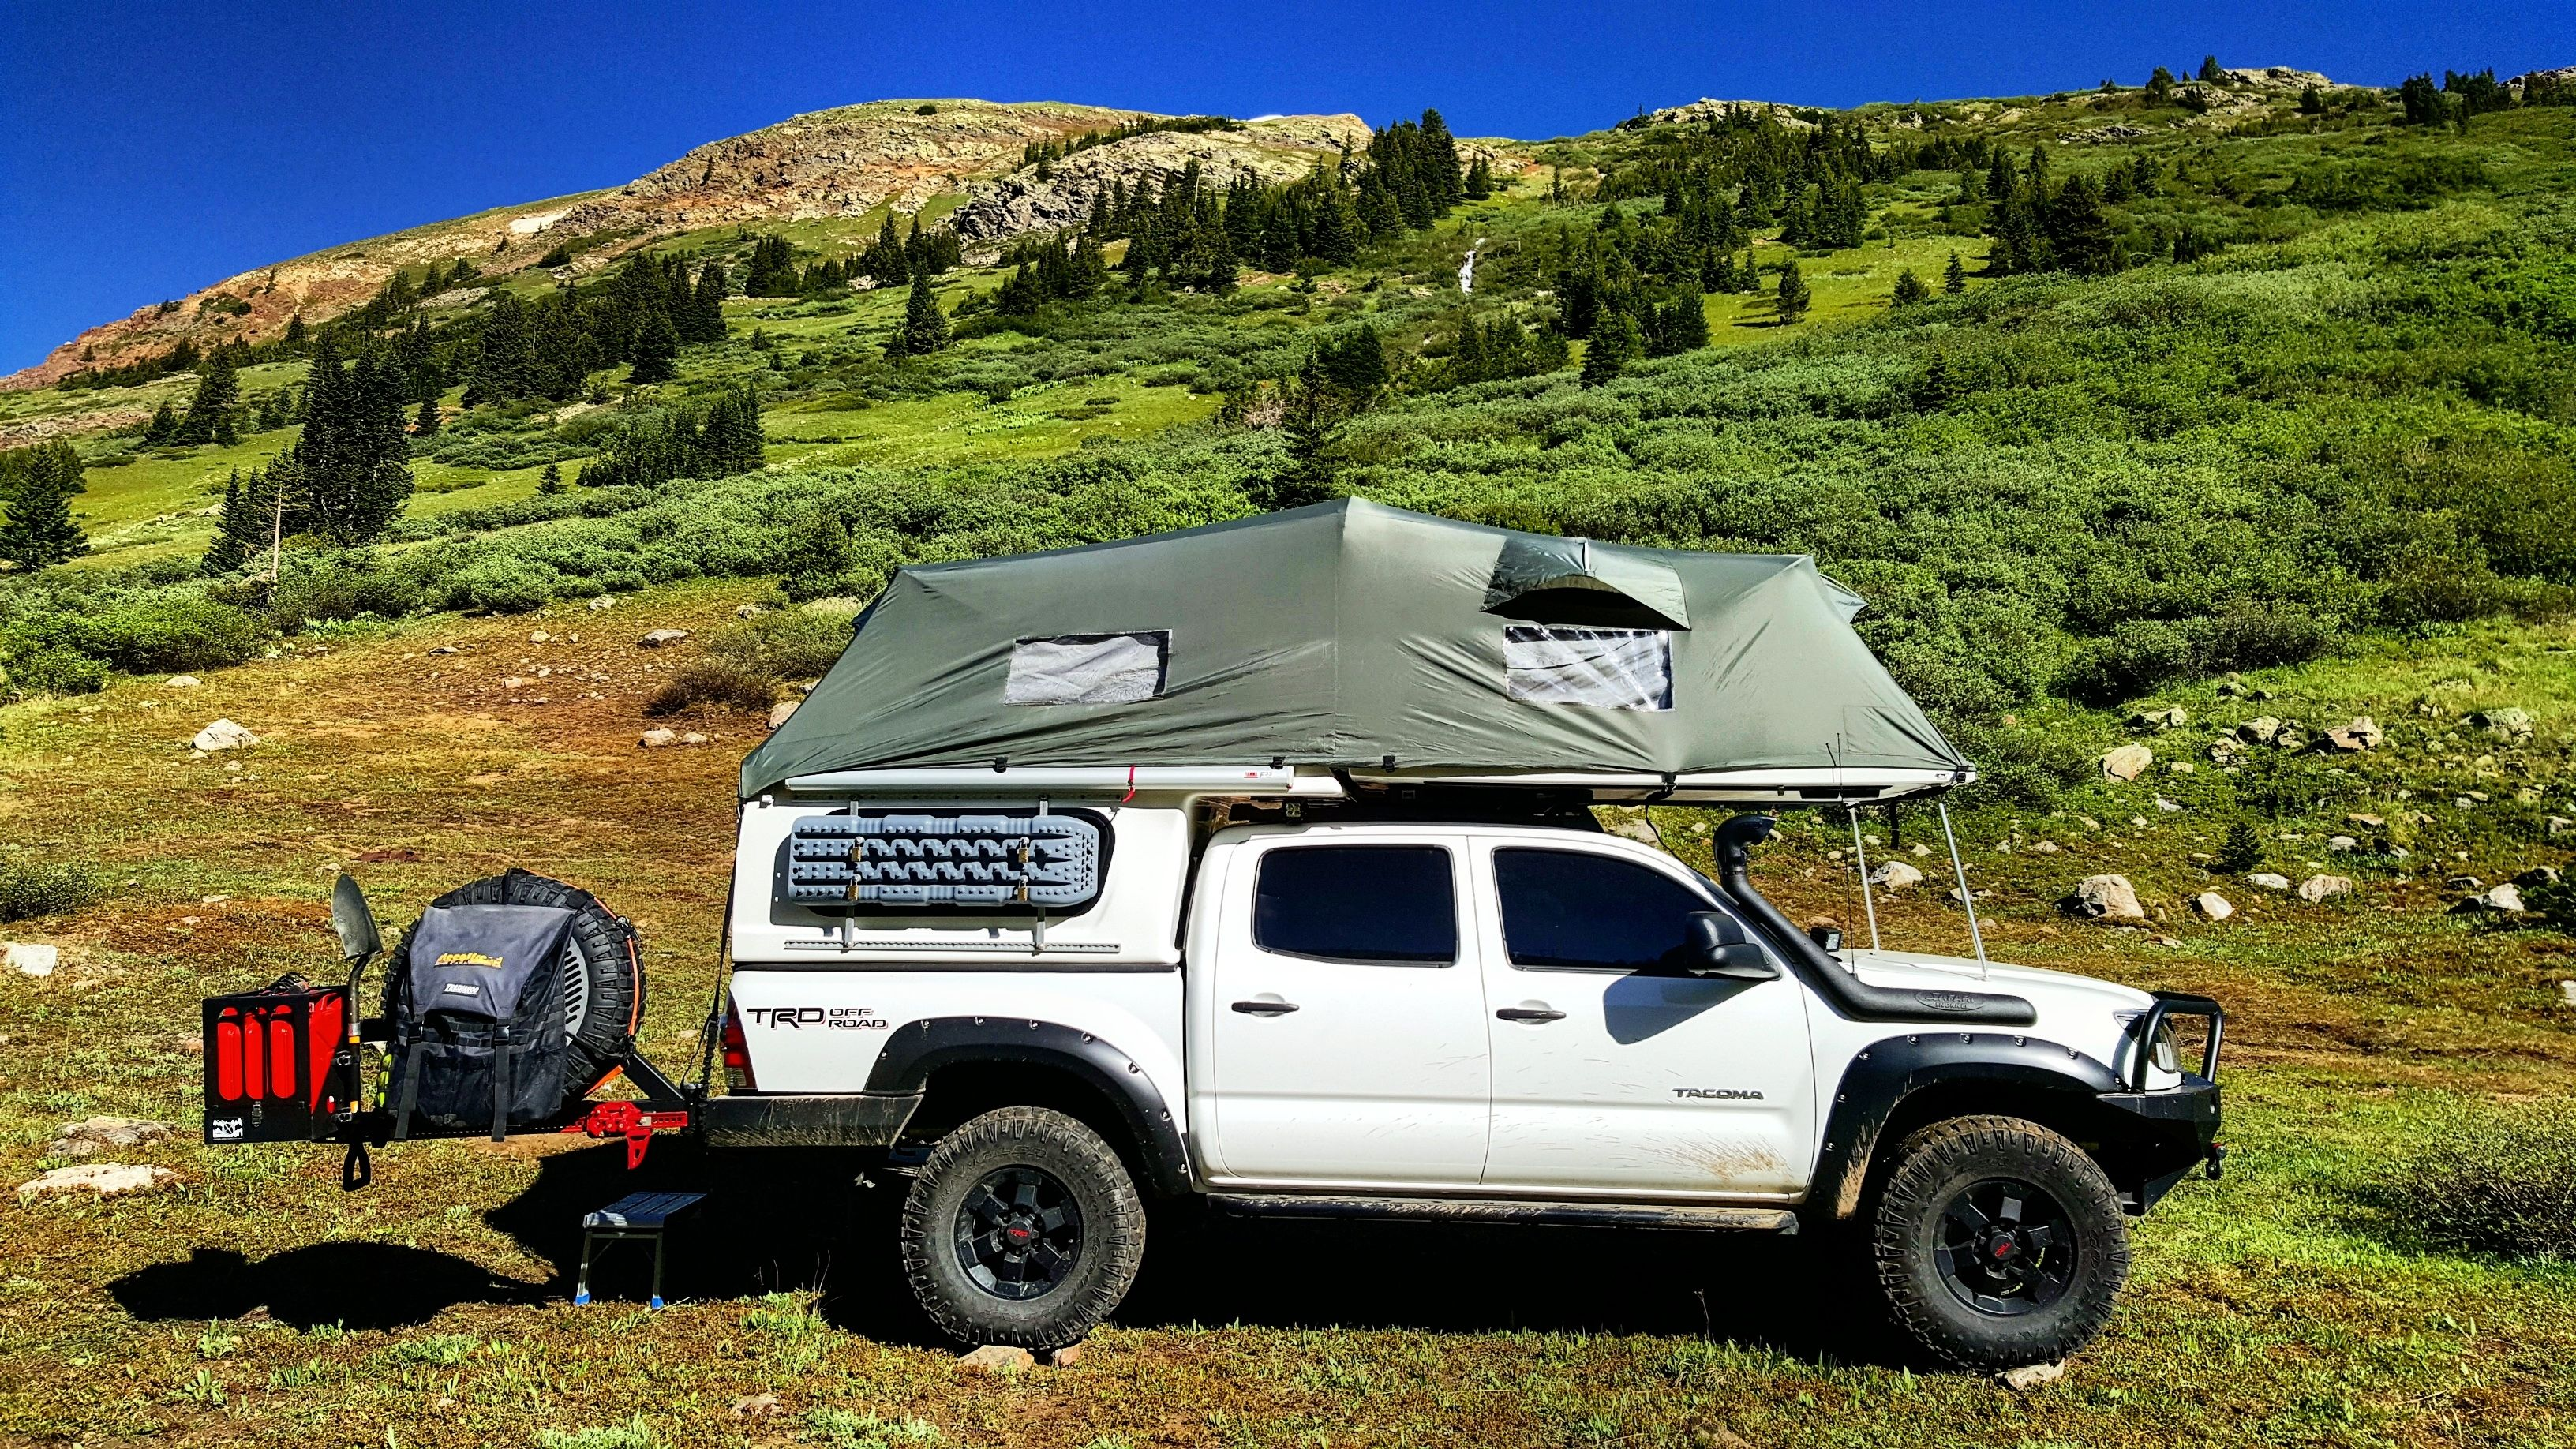 Elegant Picture Of Overland Vehiclesoverland Vehicles